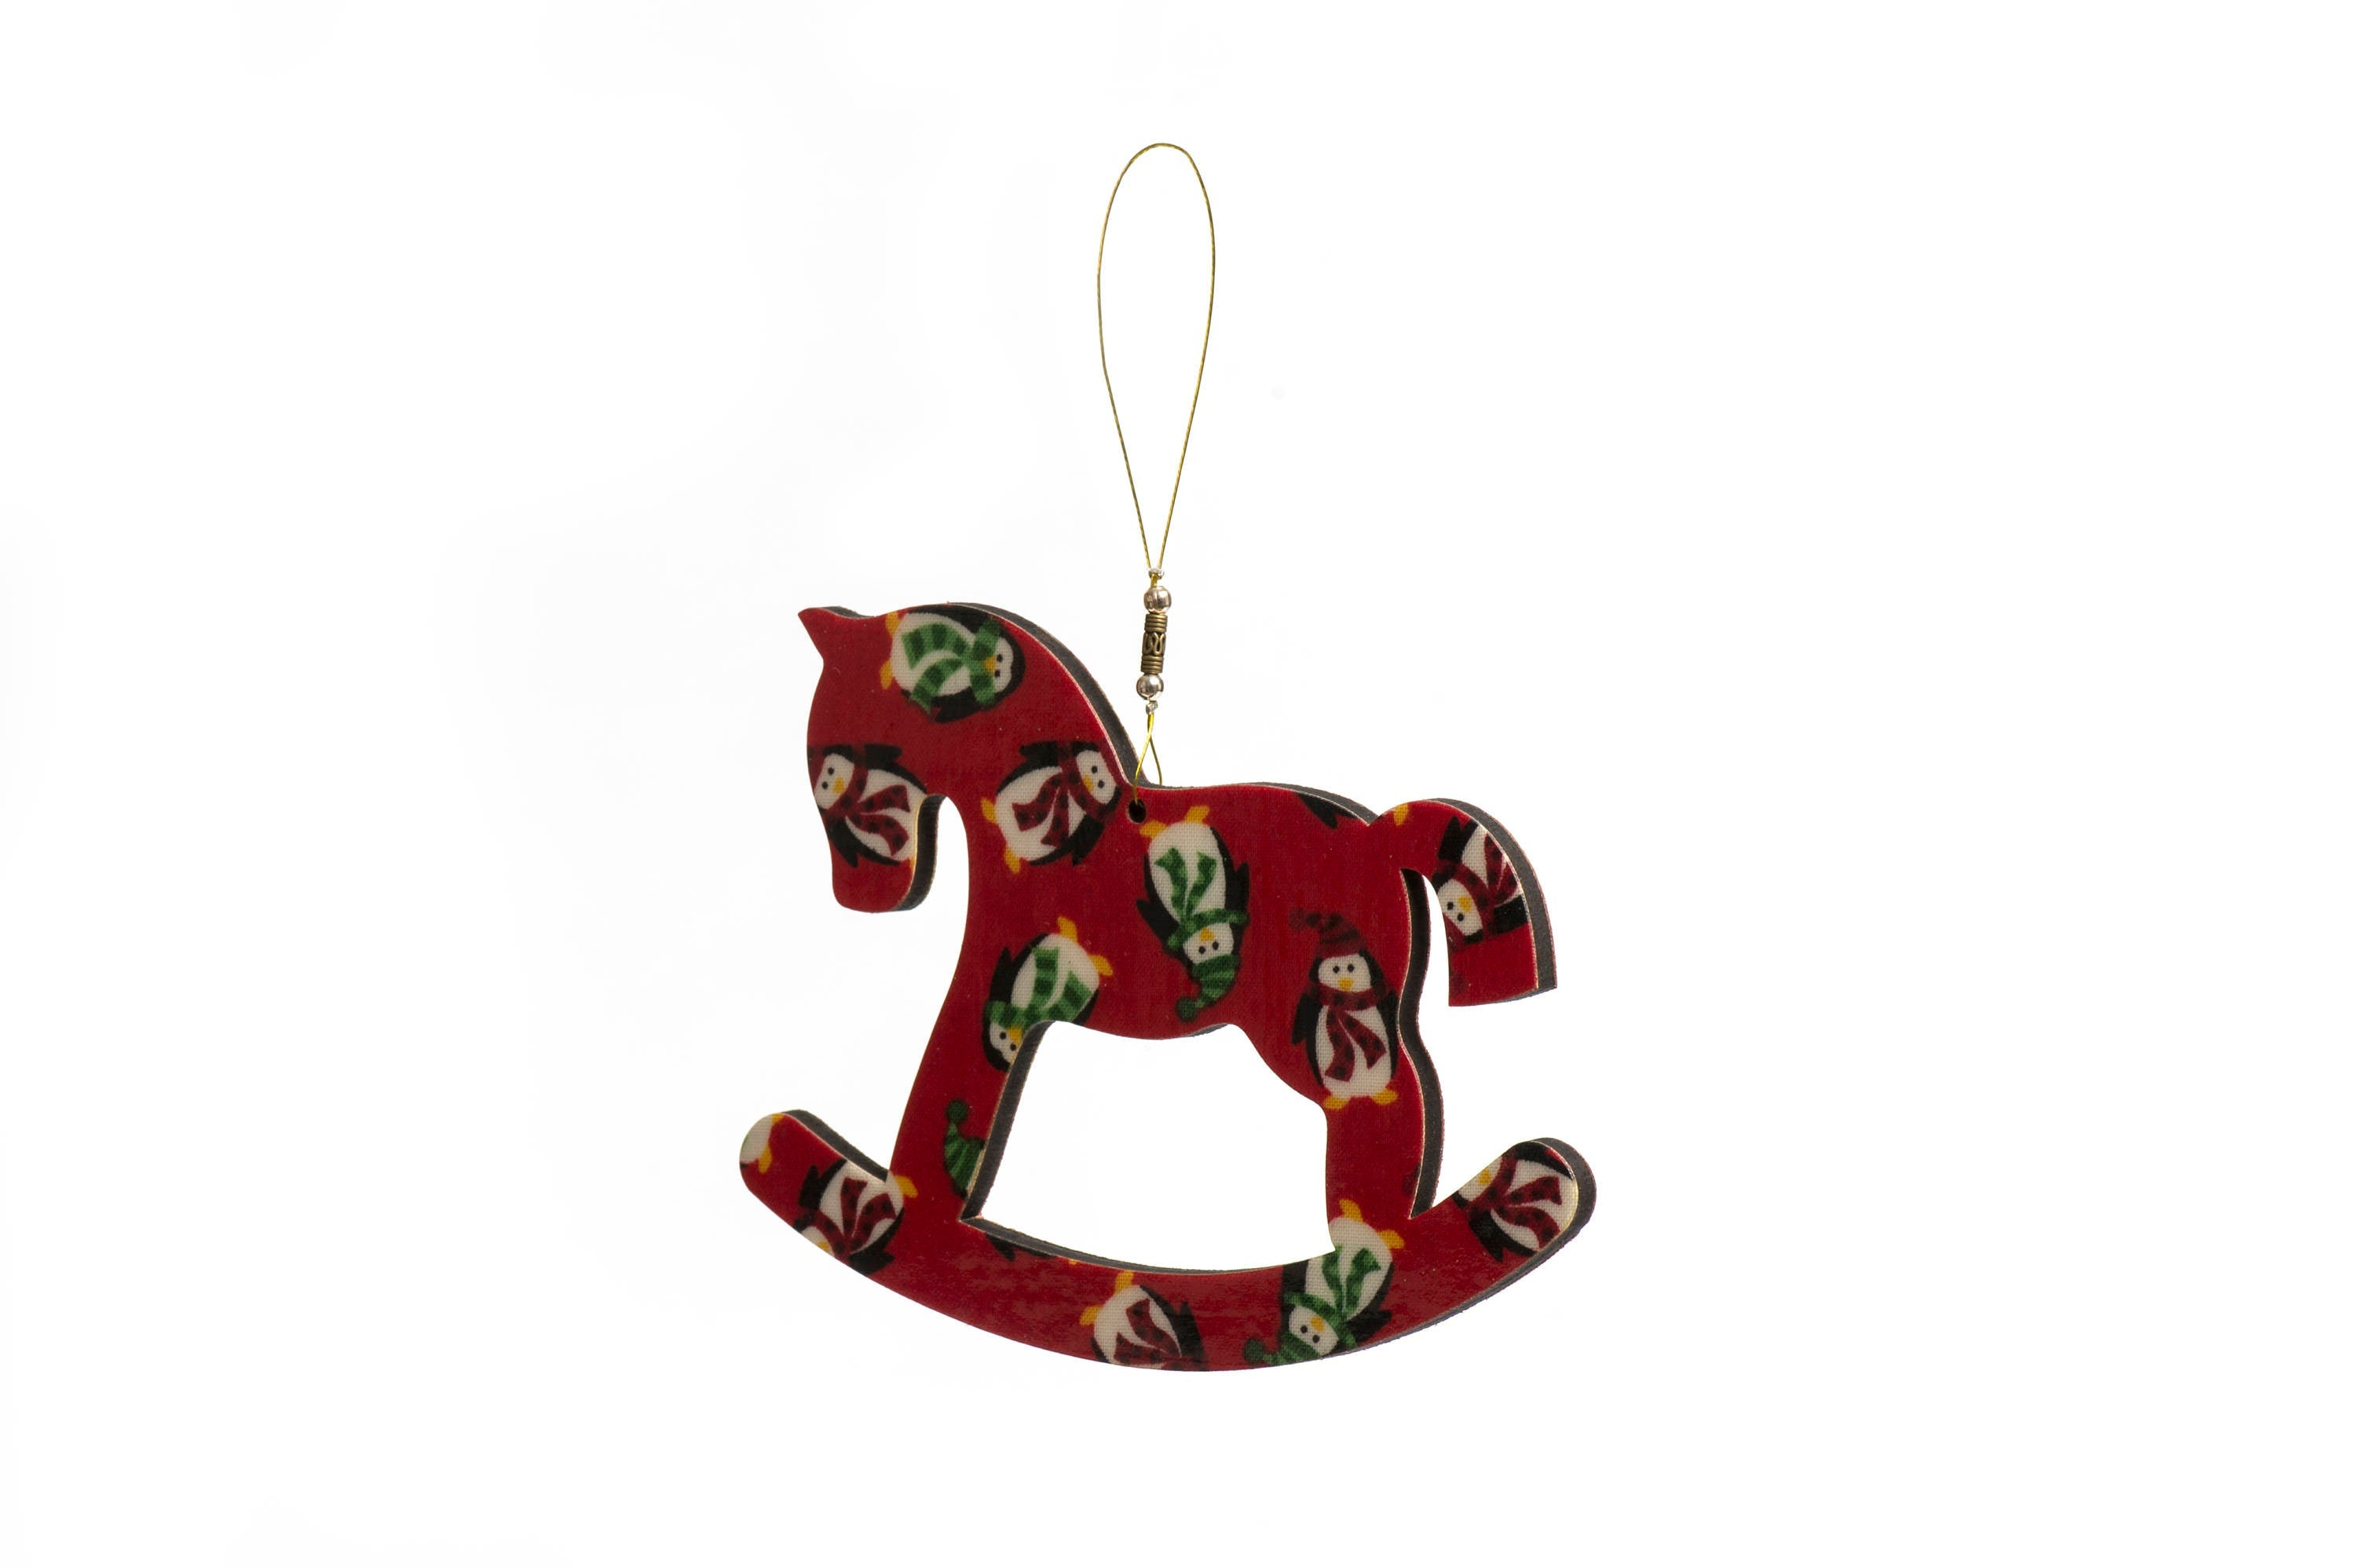 Rocking Horse Christmas Tree Decoration - Handmade